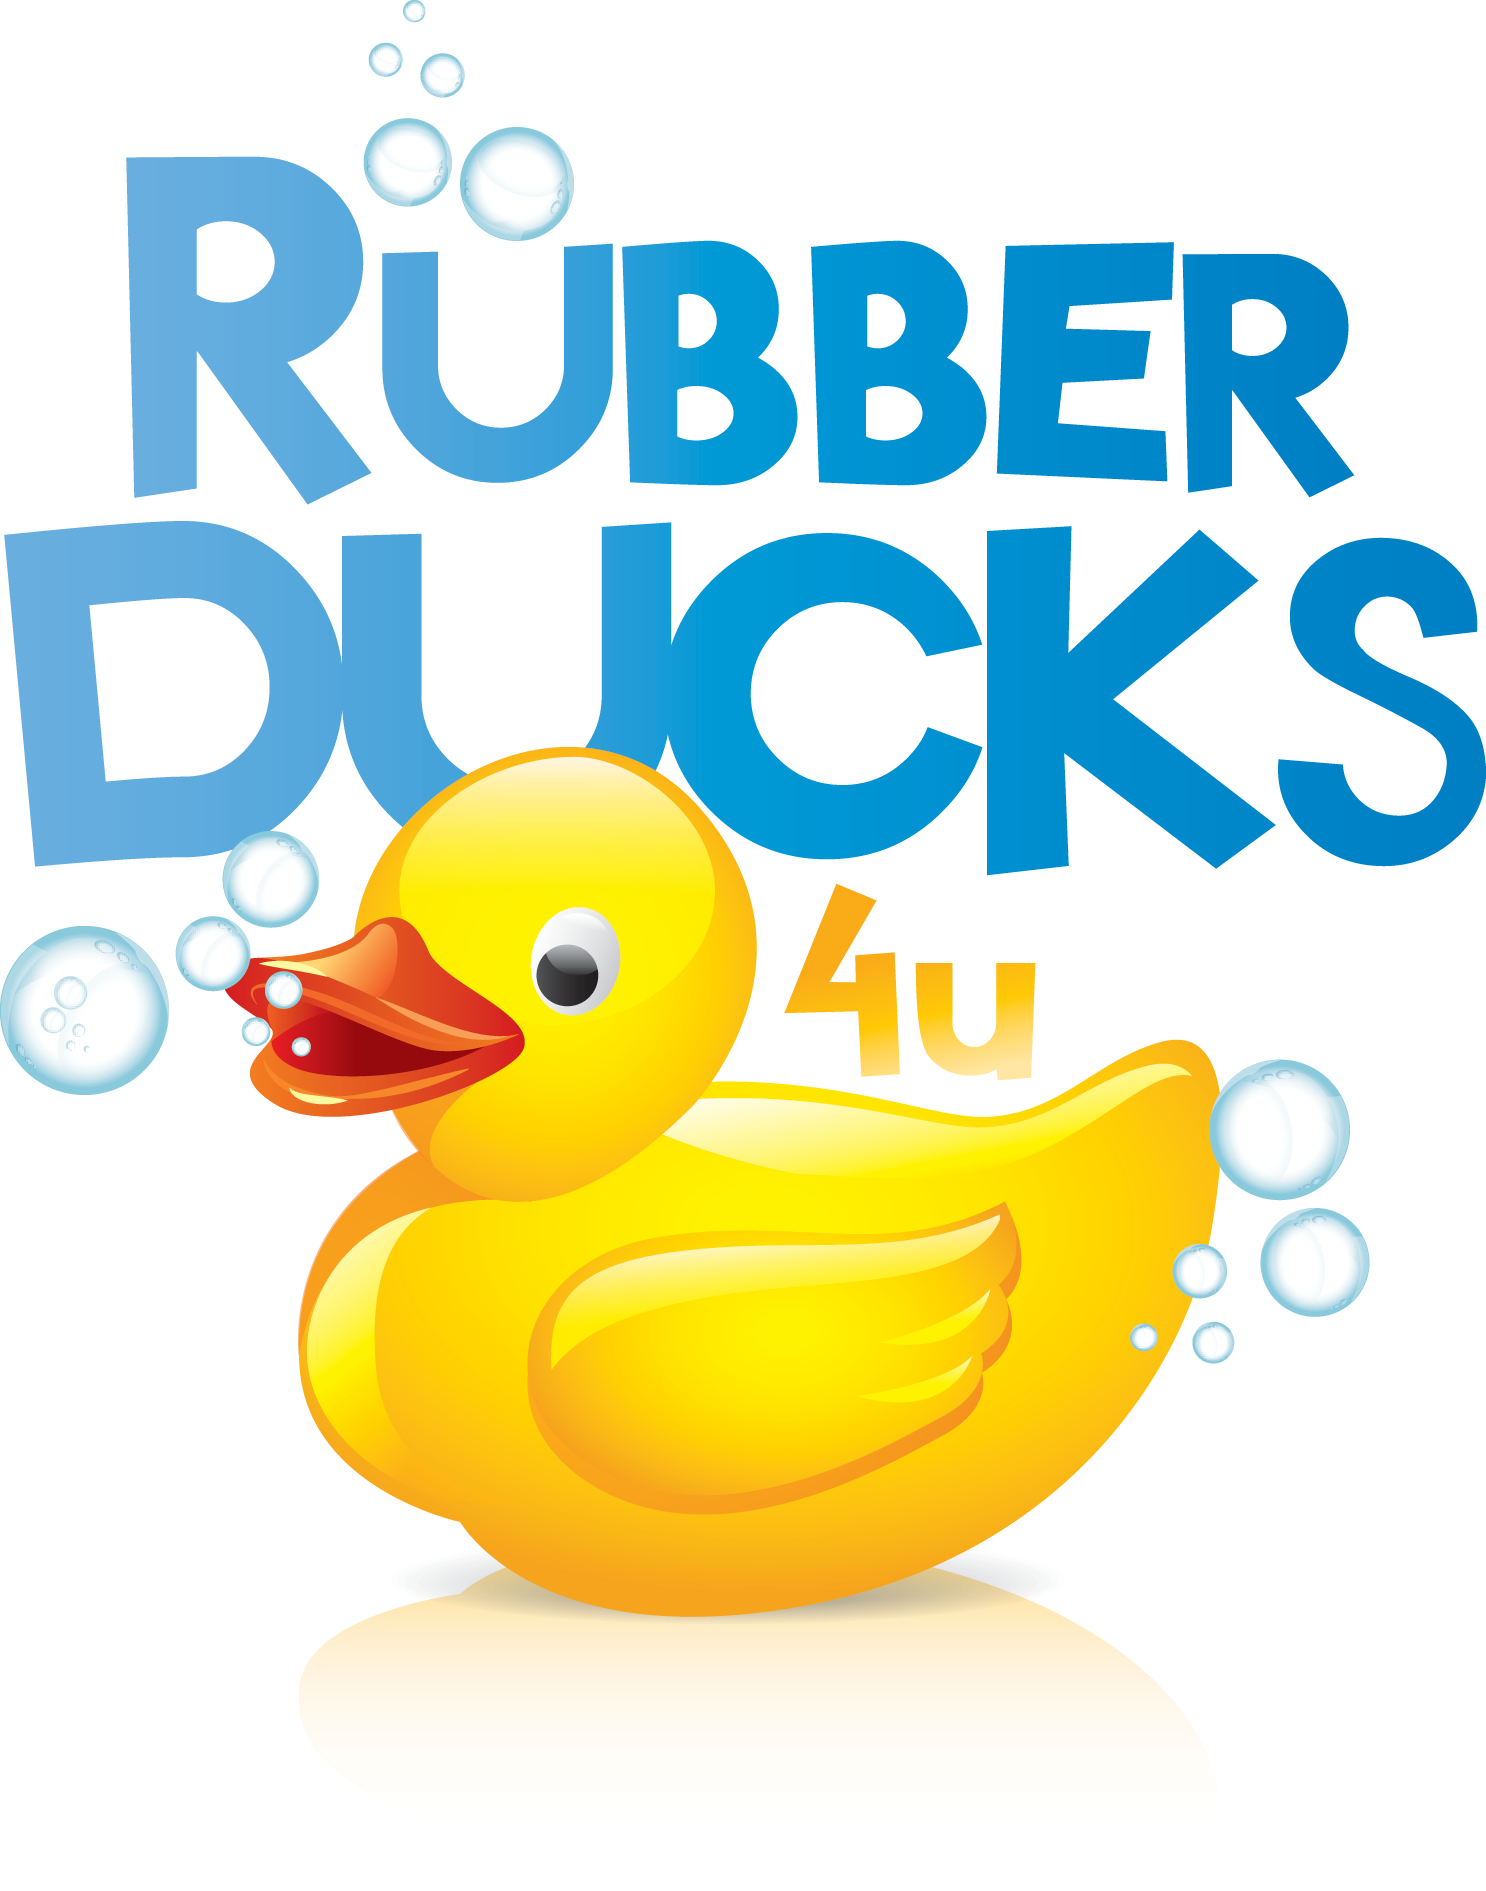 Bespoke ducks rubber u. Earthquake clipart duck cover hold